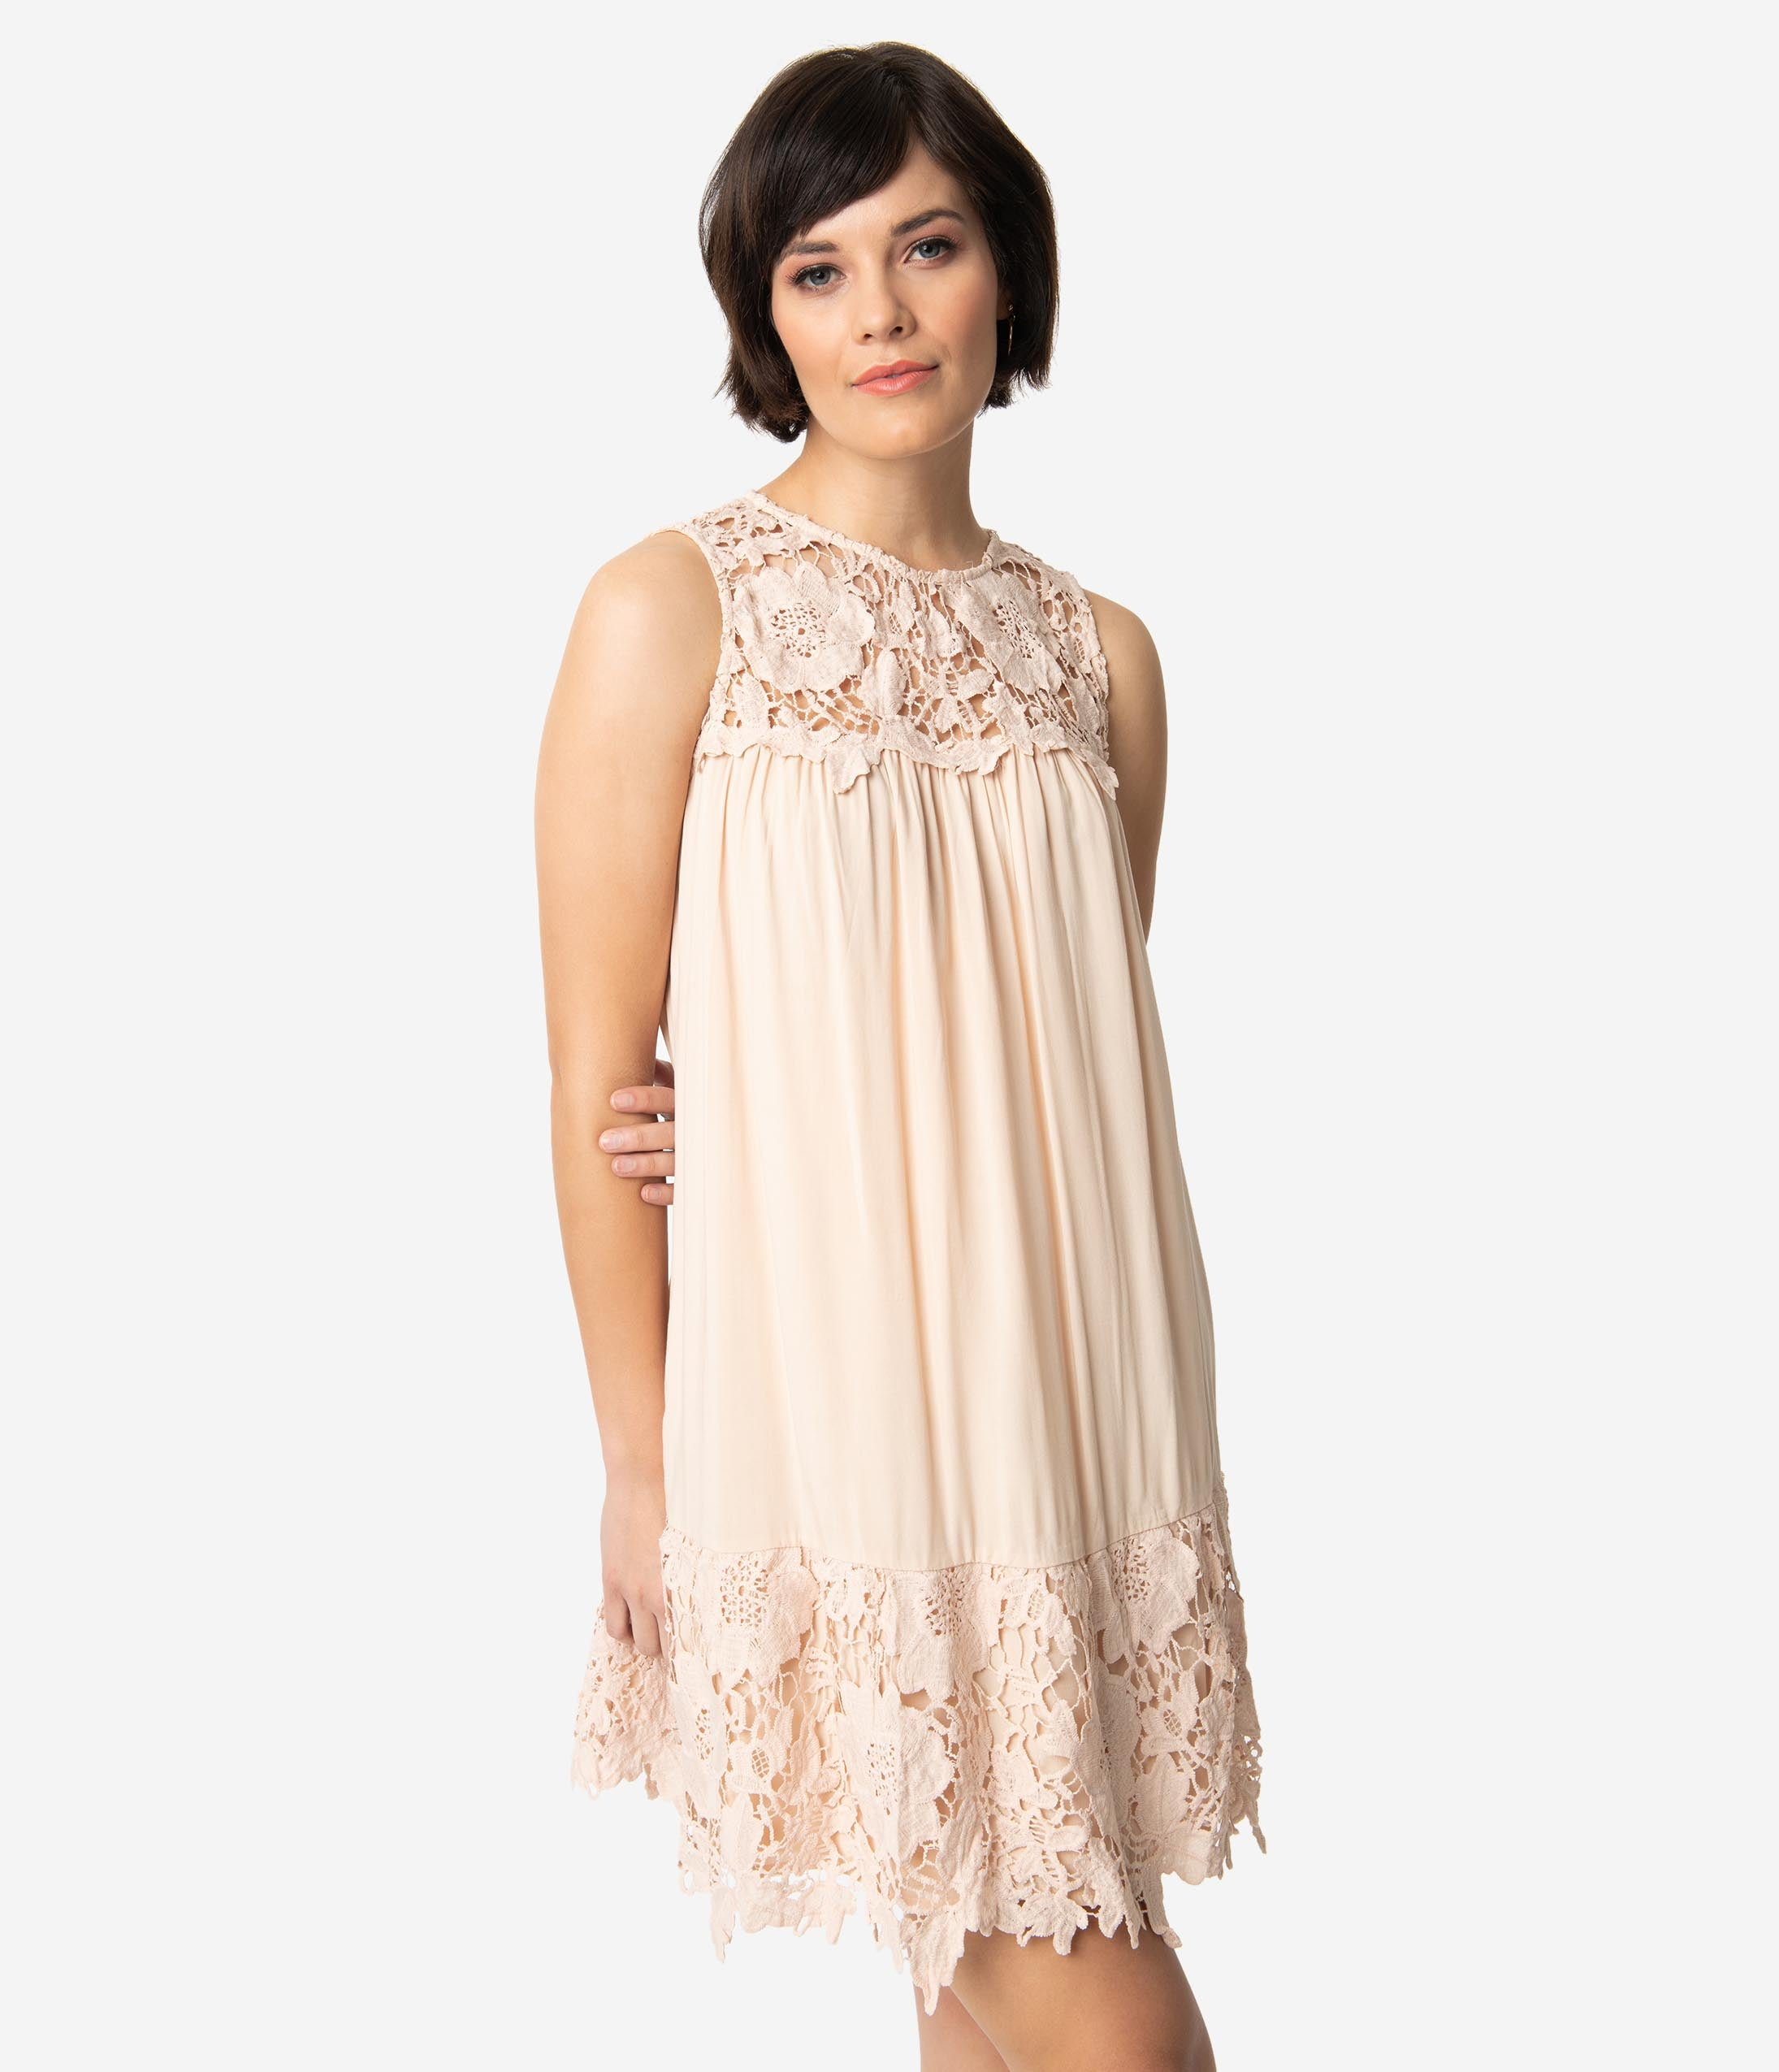 1960s – 70s Cocktail, Party, Prom, Evening Dresses Peach Pink Sleeveless Crochet Lace Tent Dress $36.00 AT vintagedancer.com